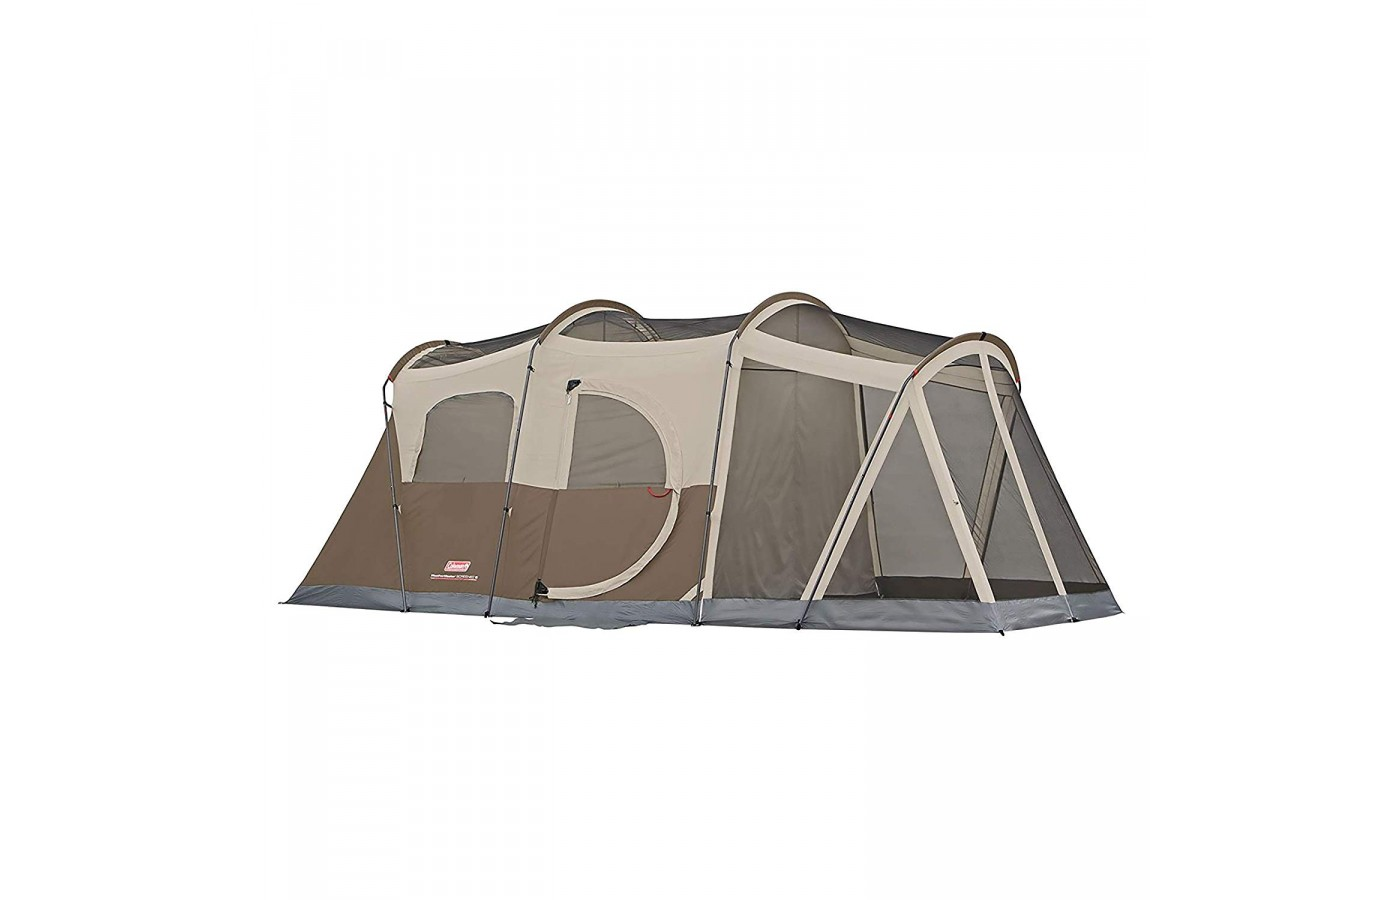 This tent has enough room for 3 queen size air mattresses.